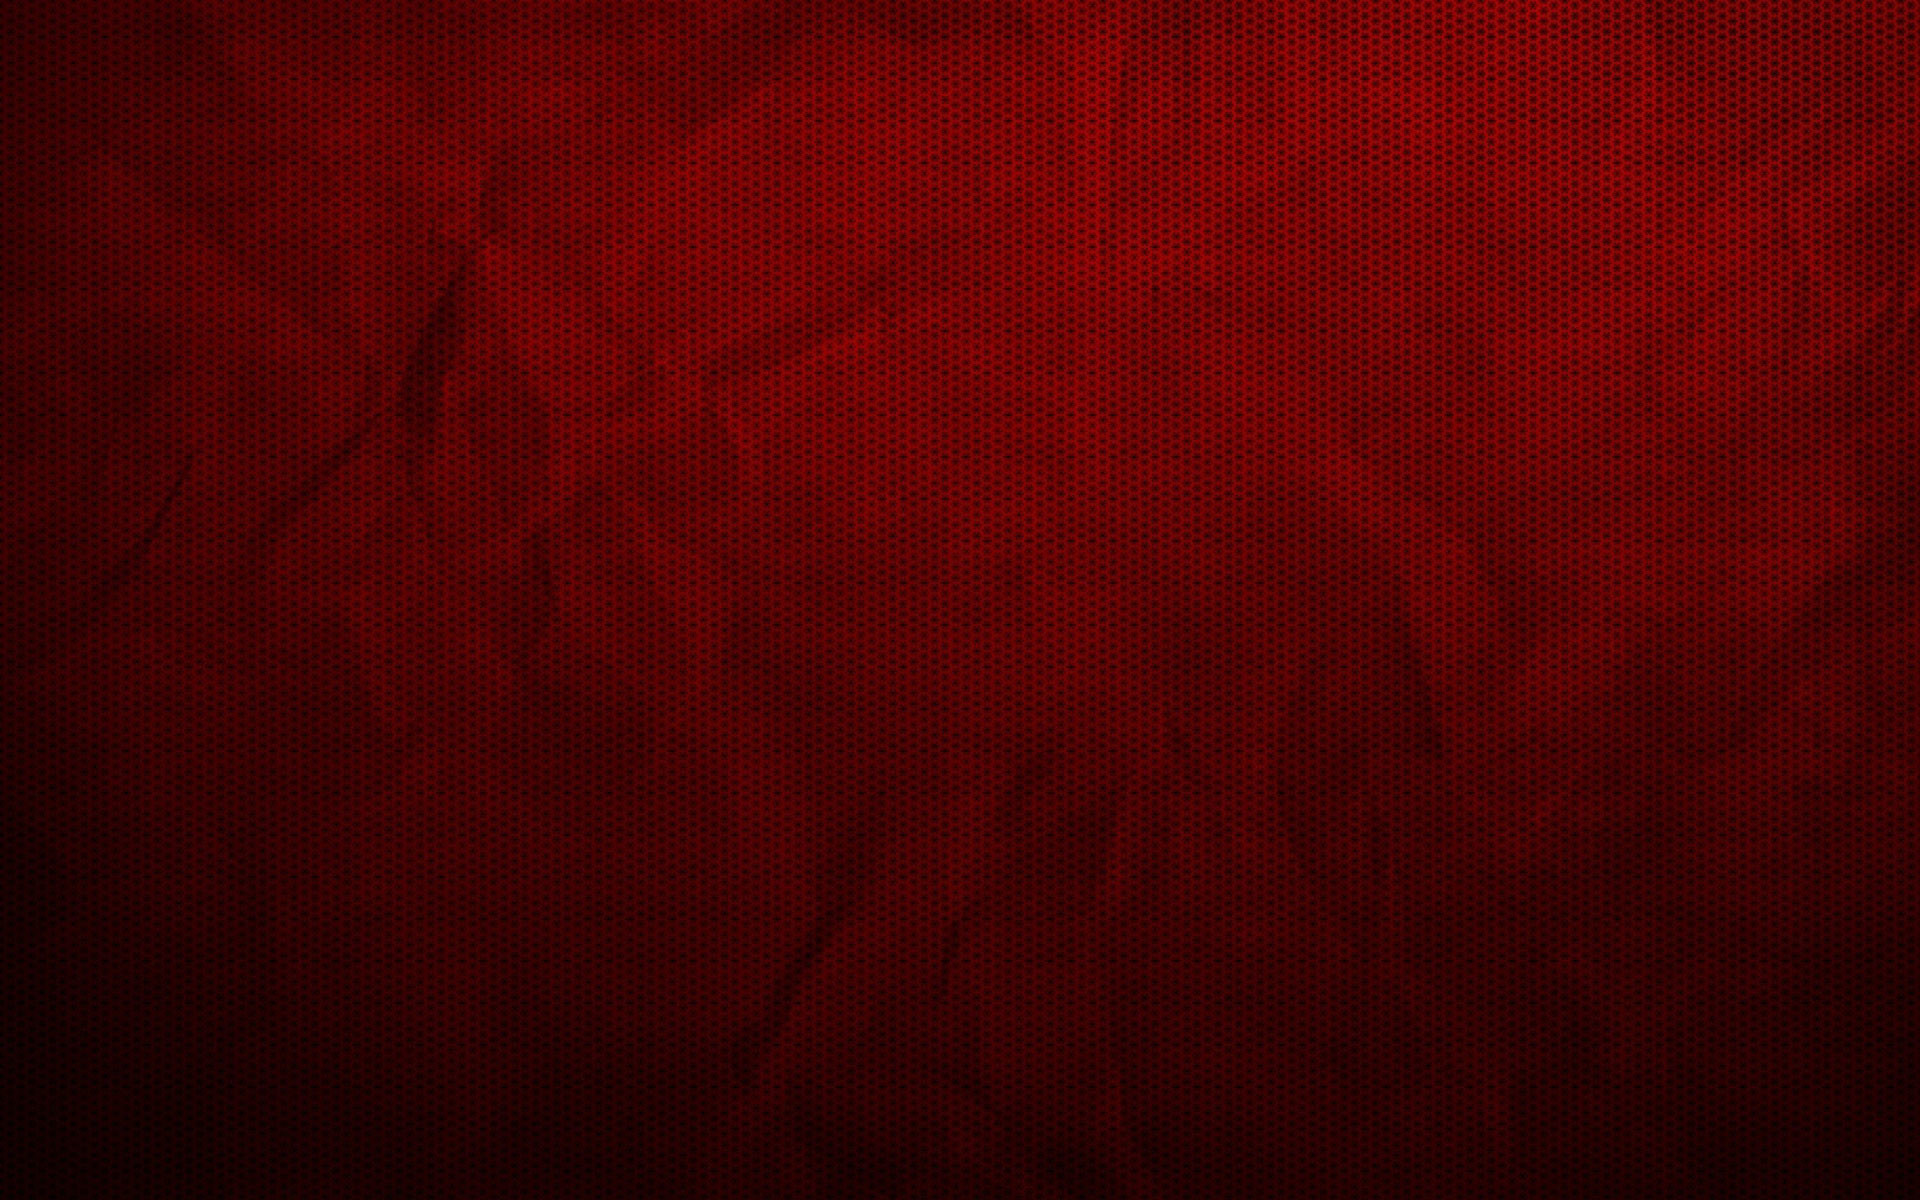 1920x1200 Red Wallpaper 18